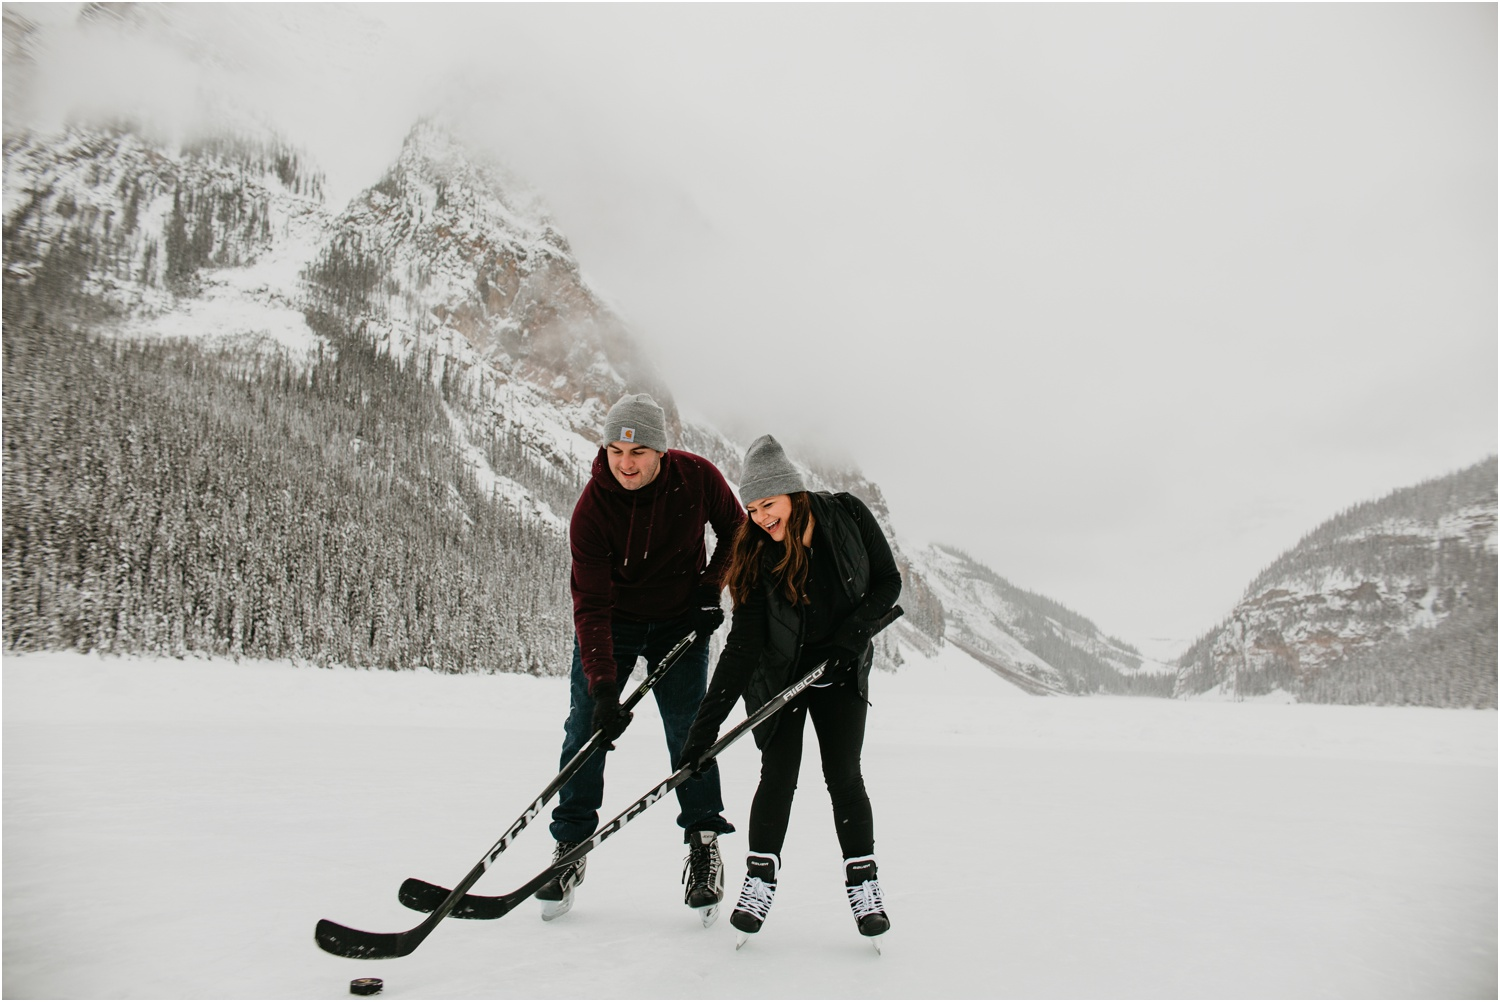 Banff,Banff Photography,Banff Skating,Banff Wedding Photographer,Courtney Jess Photography,Golden Wedding Photographer,Kimberley BC,Kimberley Photographer,Kimberley Wedding Photographer,Kootenay Photographer,Kootenay Wedding Photographer,Lake Louise,Lake Louise Honeymoon,Lake Louise Photographer,Lake Louise Photography,Lake Louise Skating,Lake Louise Winter,Rocky Mountain Couples,Rocky Mountain Engagement,Rocky Mountain Photographer,Rocky Mountain Wedding Photography,